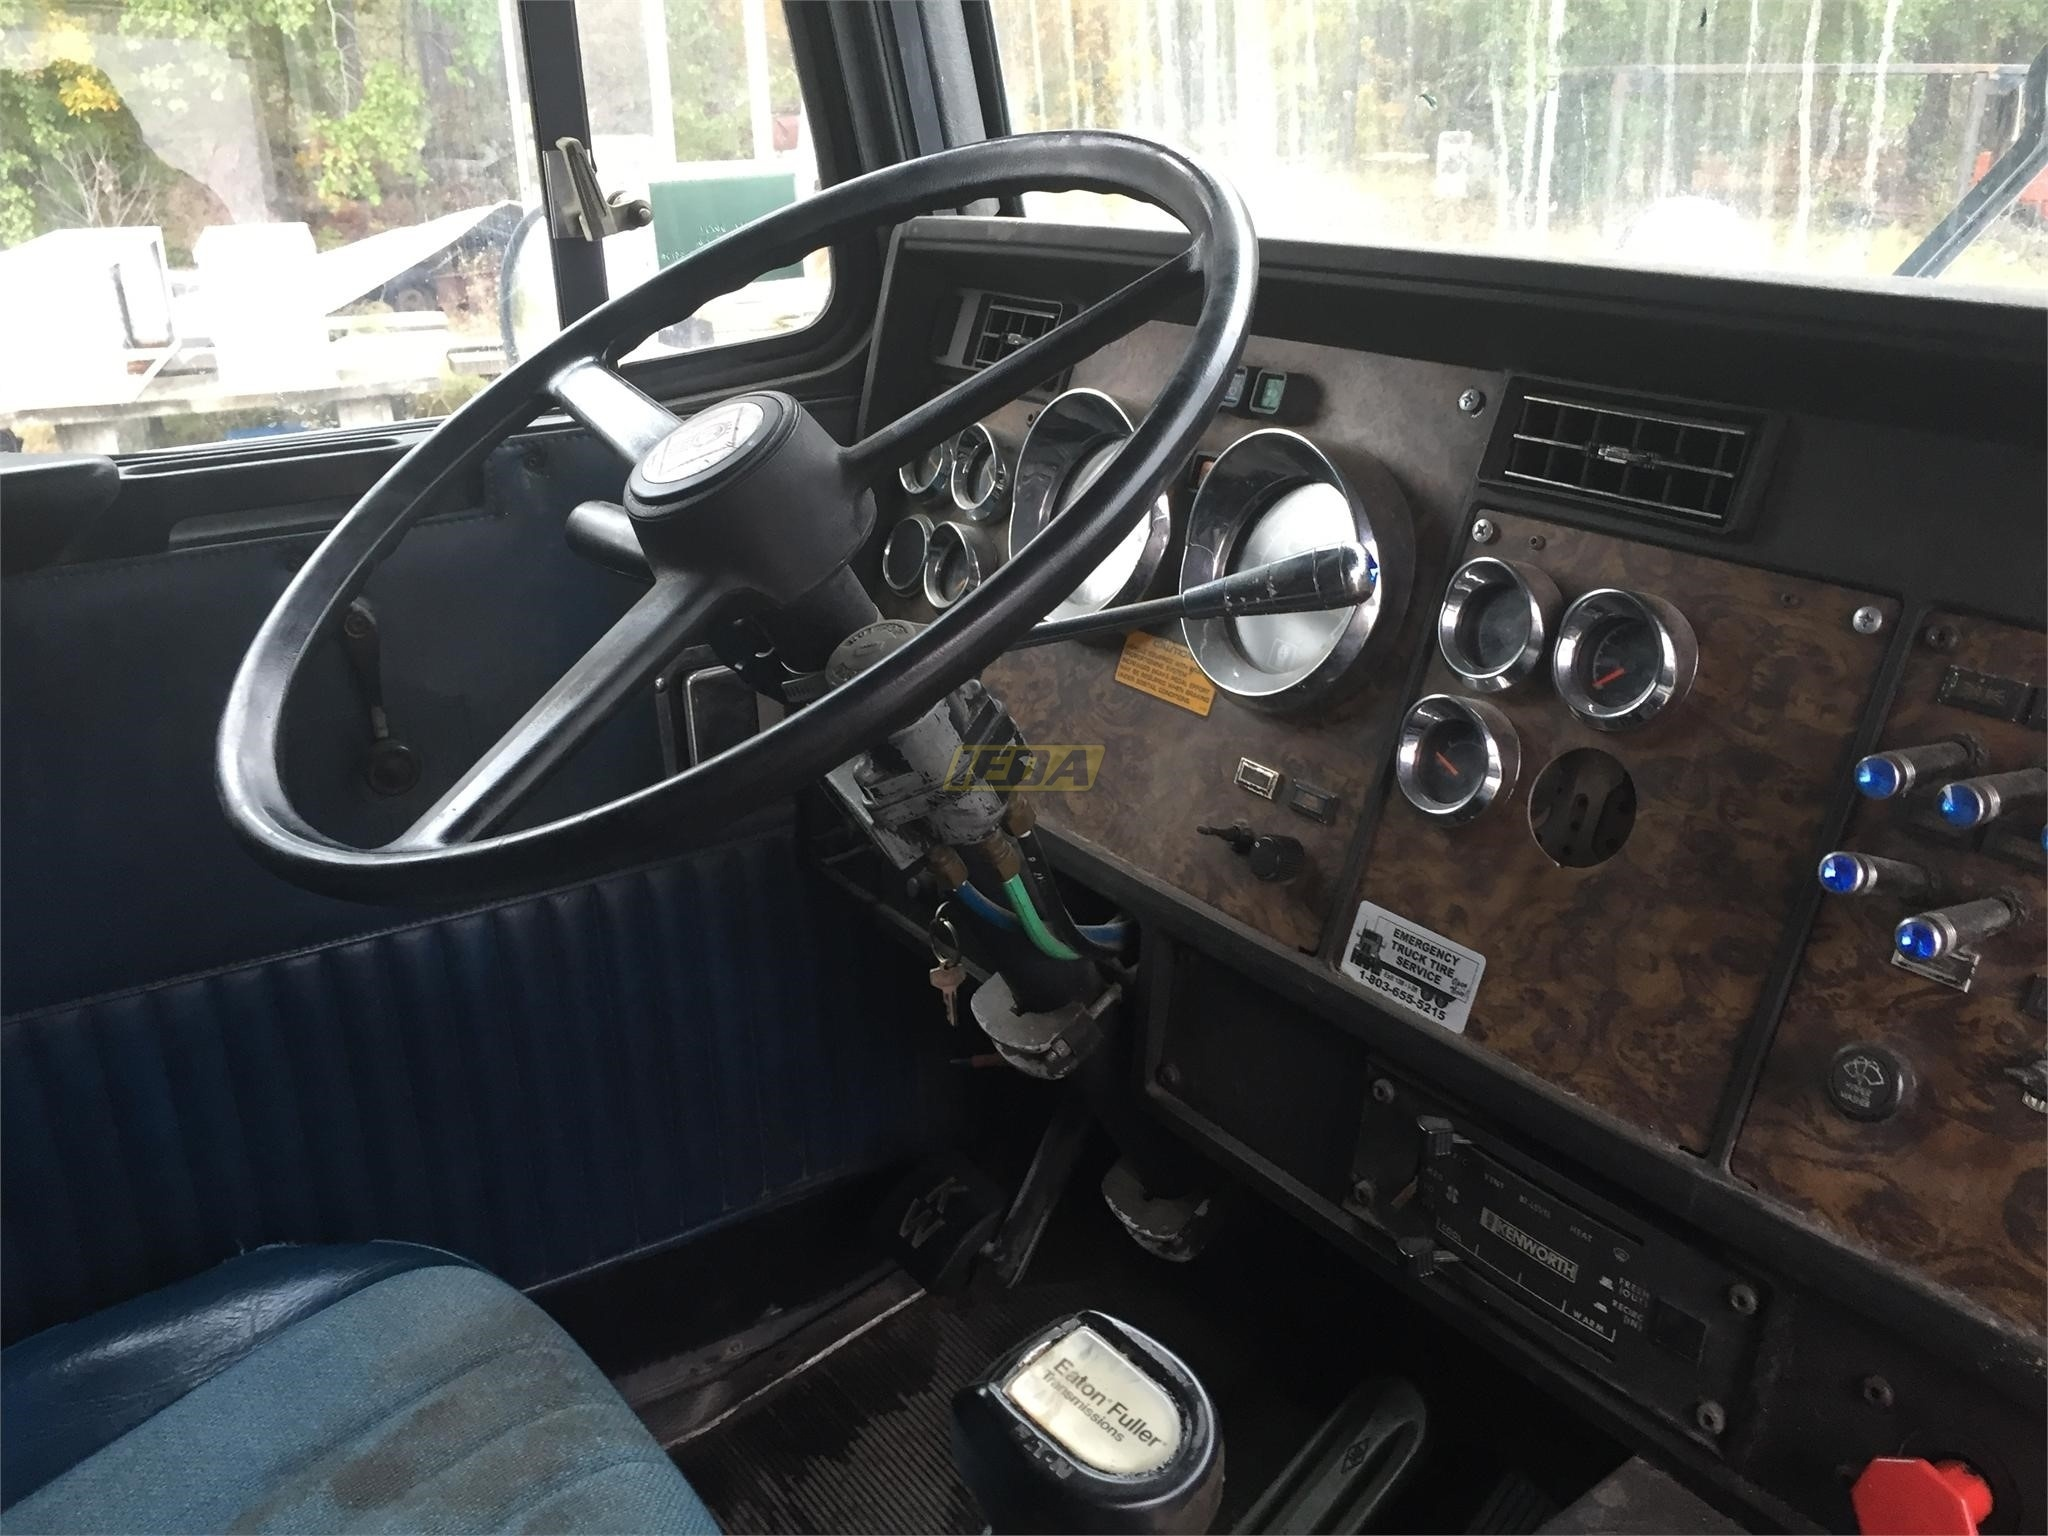 Used 1993 Kenworth T800 For Sale